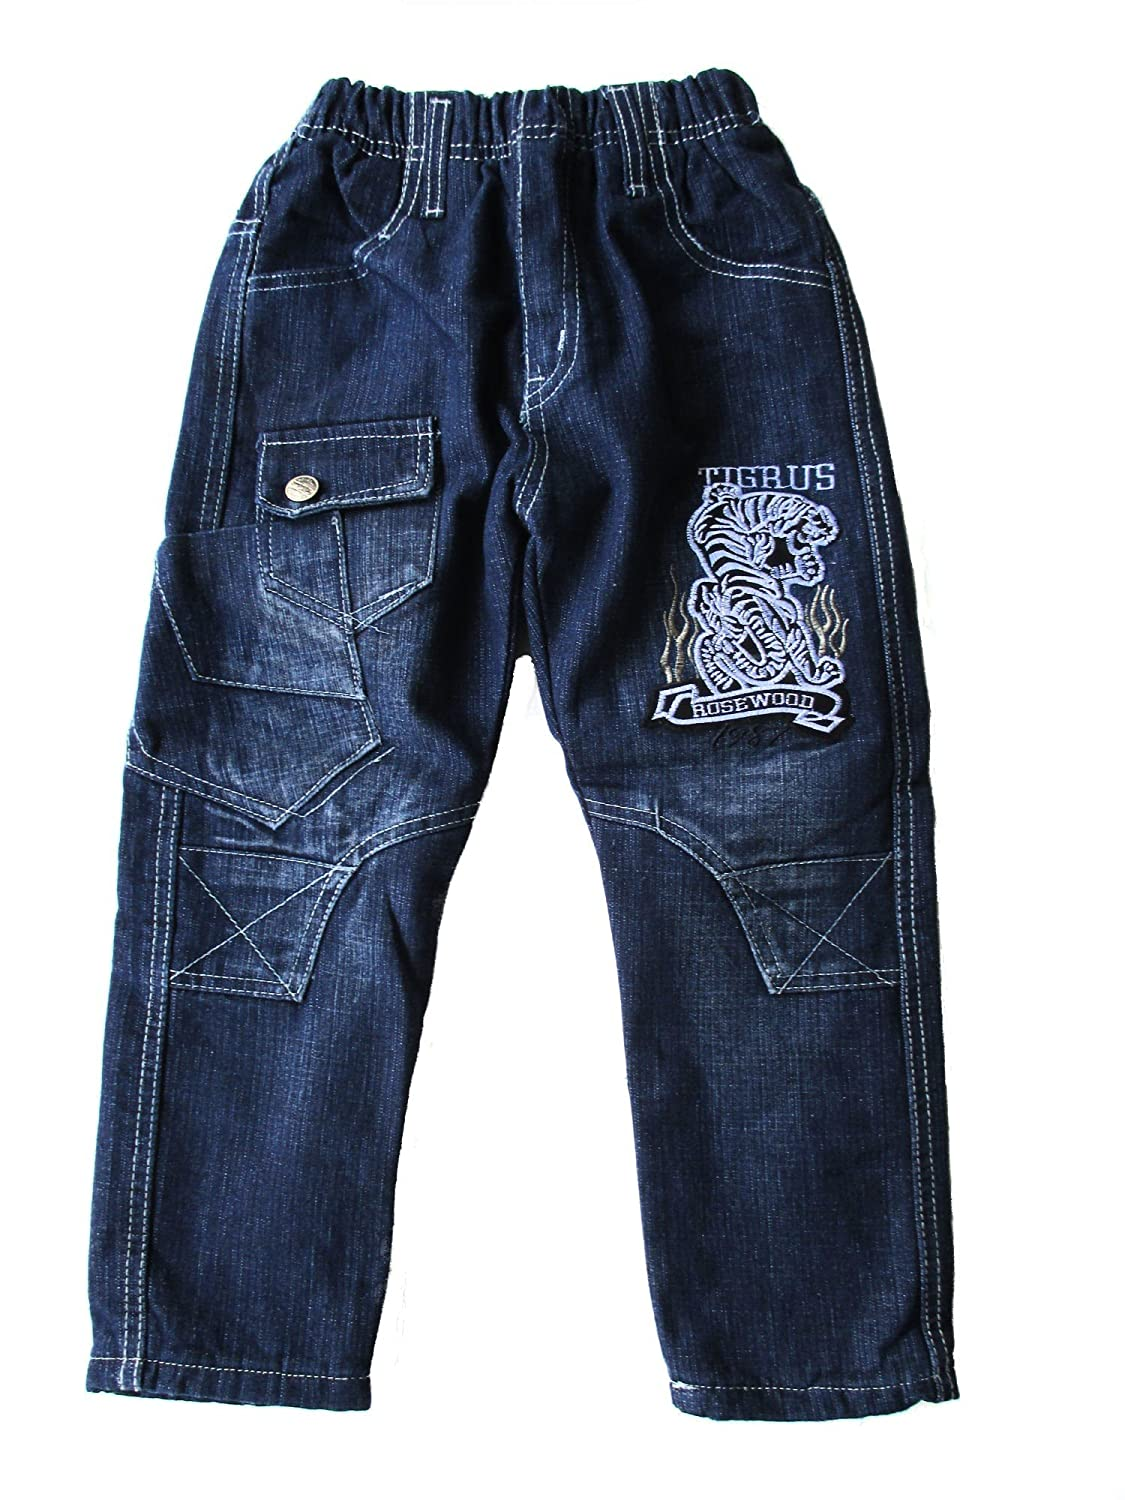 Kinder Jungen Thermo Jeans, Thermojeans, Thermohose, gefüttert, mit Motiv 'Tiger', blau, RB604